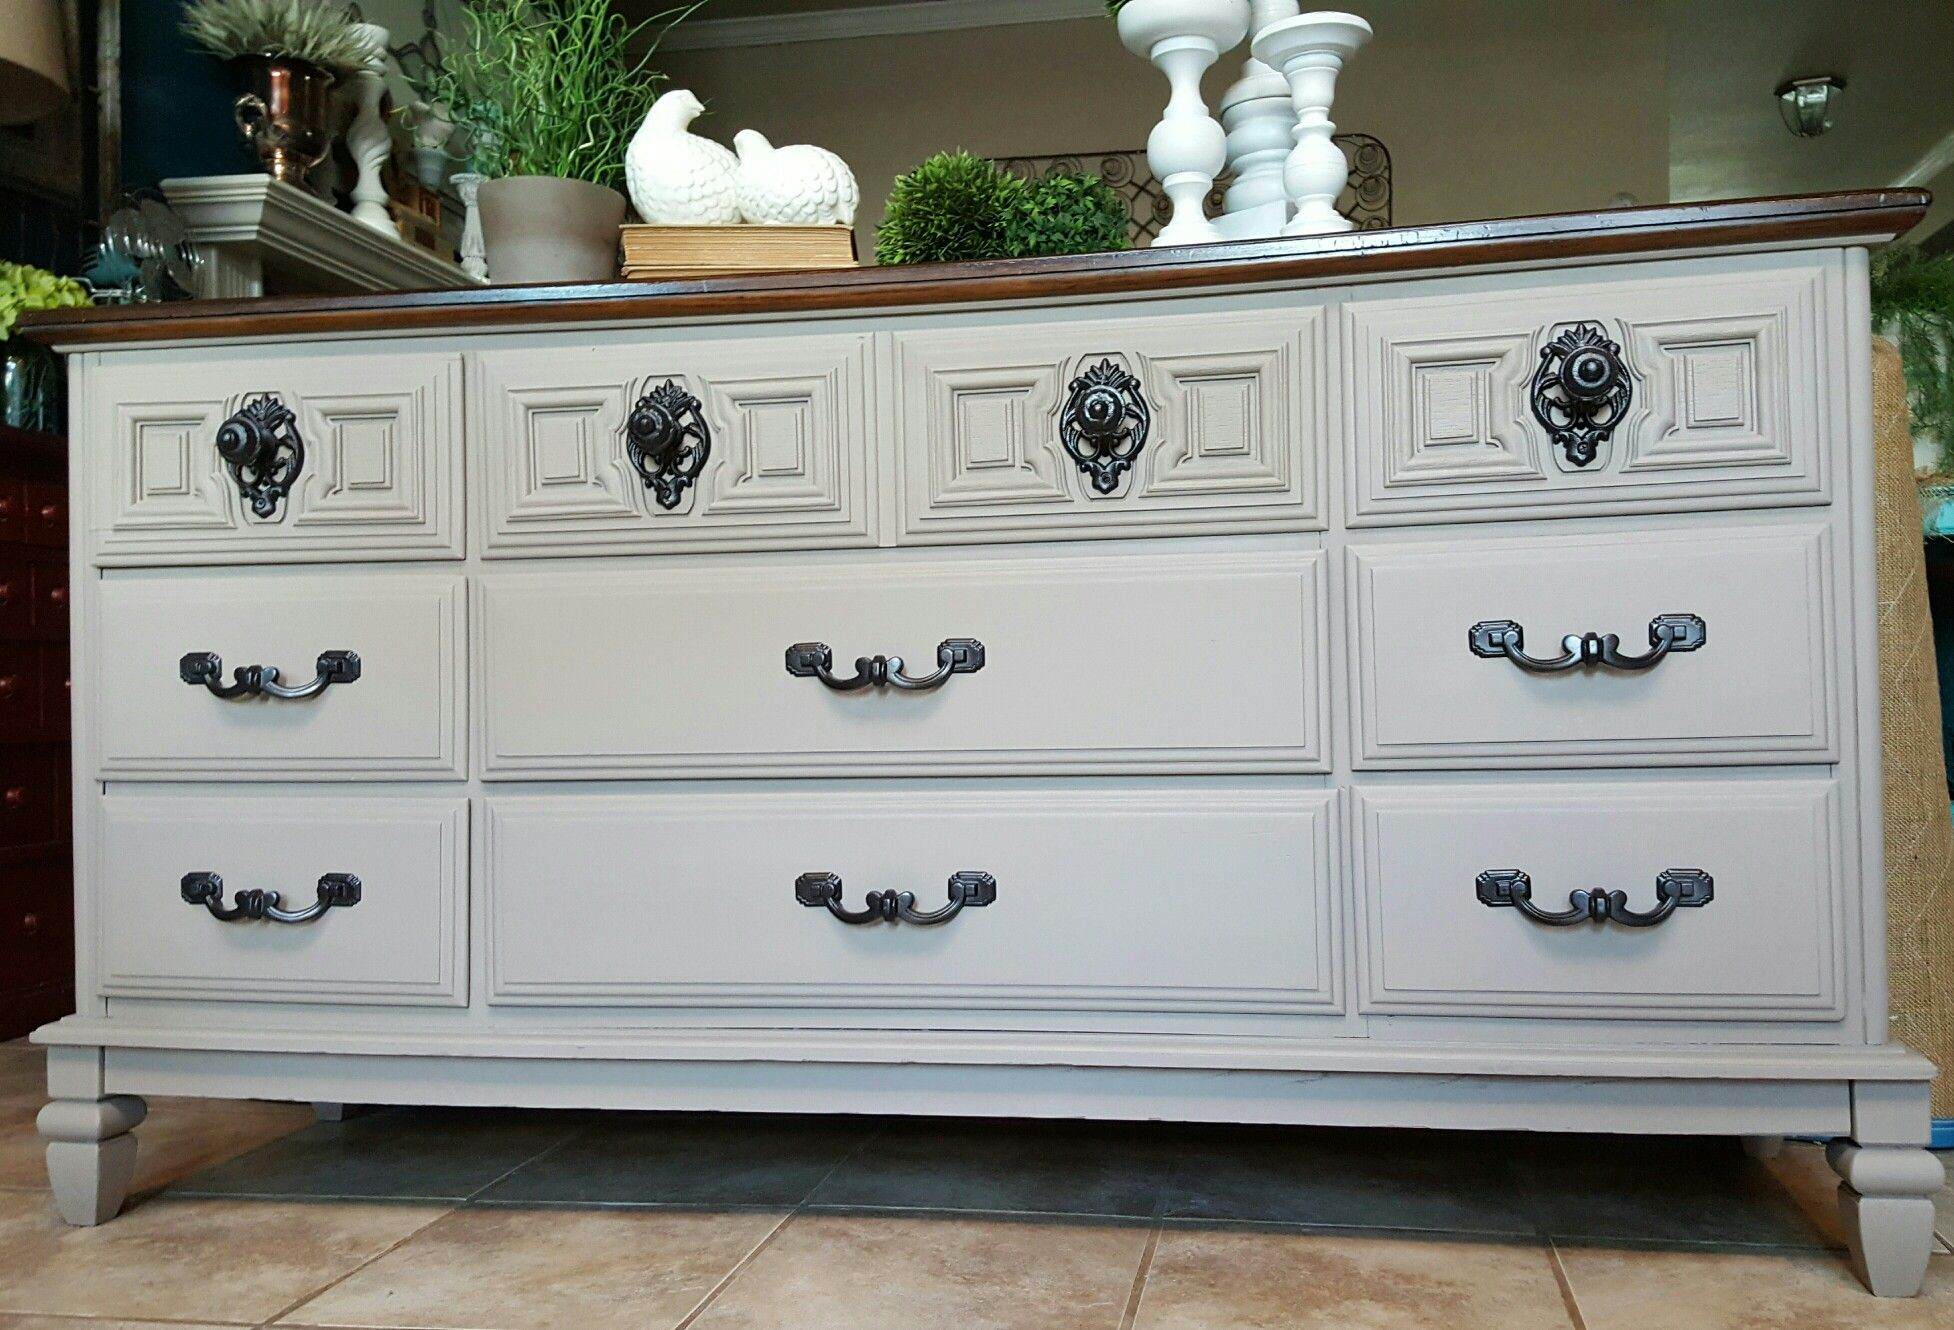 Genial Beautiful Vintage Owosso Dresser In Algonquin Fusion Mineral Paint By  @WhyNotRedesign Www.facebook.